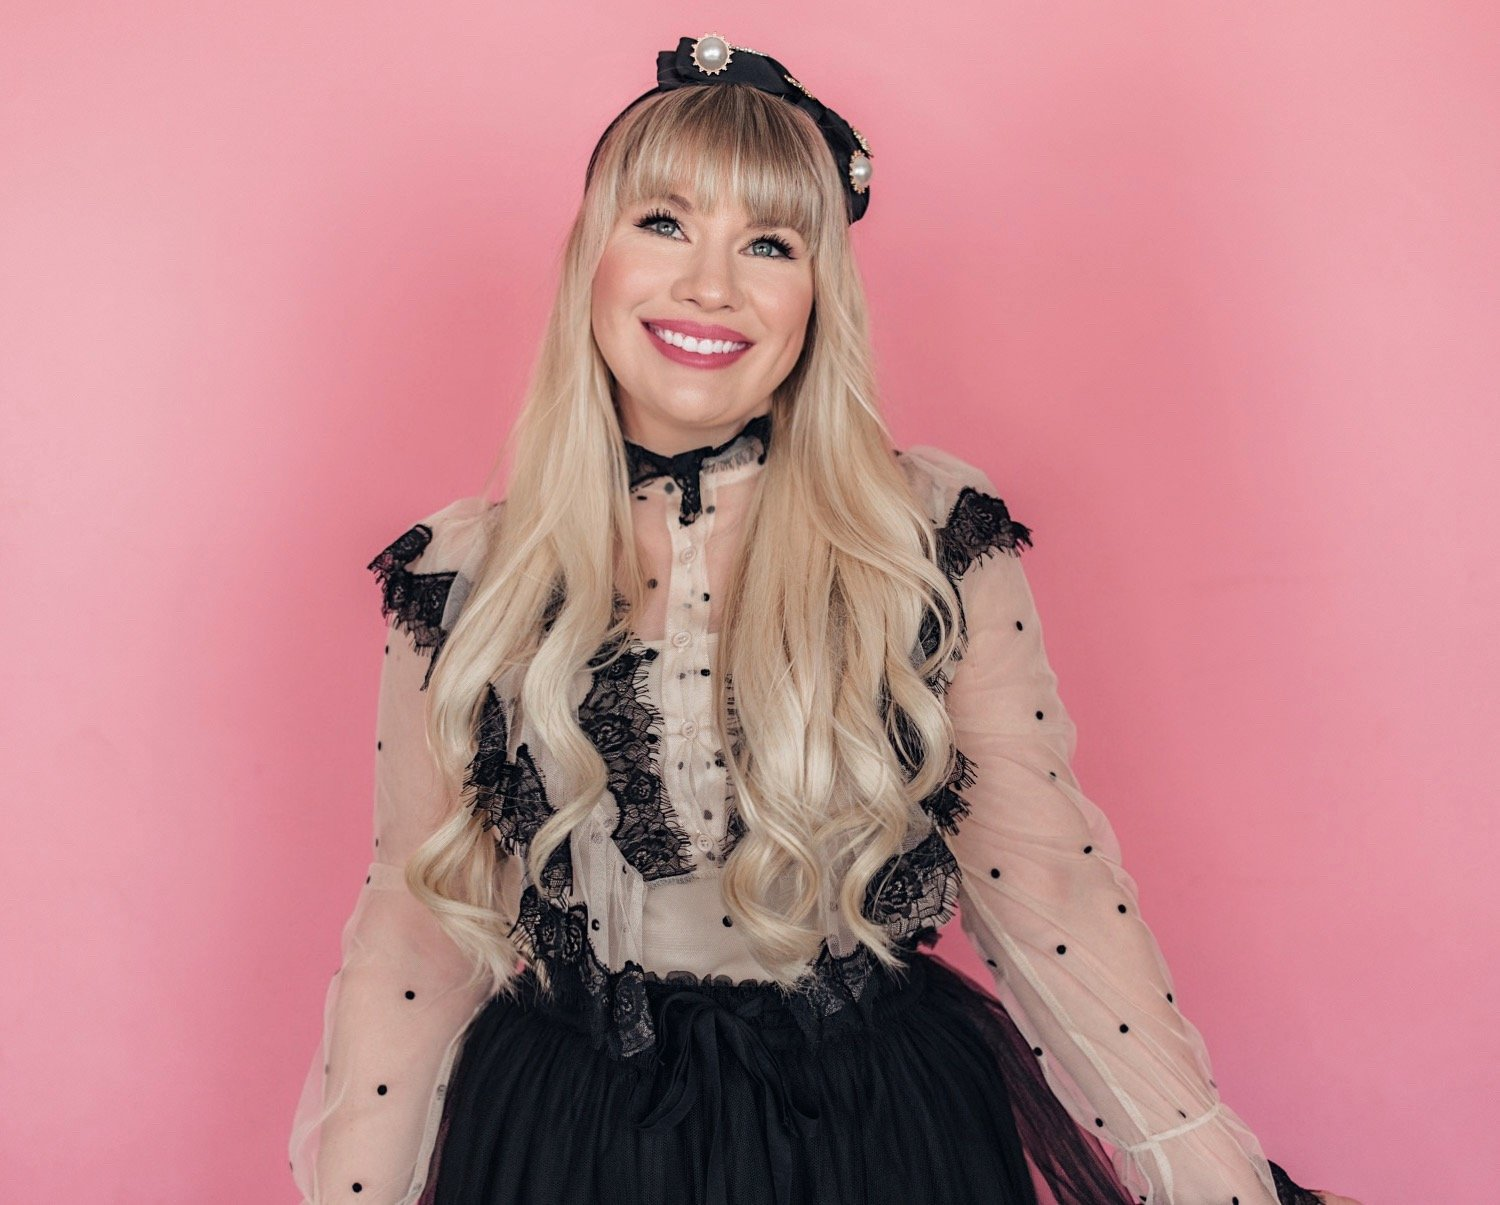 Fashion blogger Elizabeth Hugen of Lizzie in Lace shares a feminine outfit idea with a black polka dot ruffled top and black tulle skirt with black bow headband